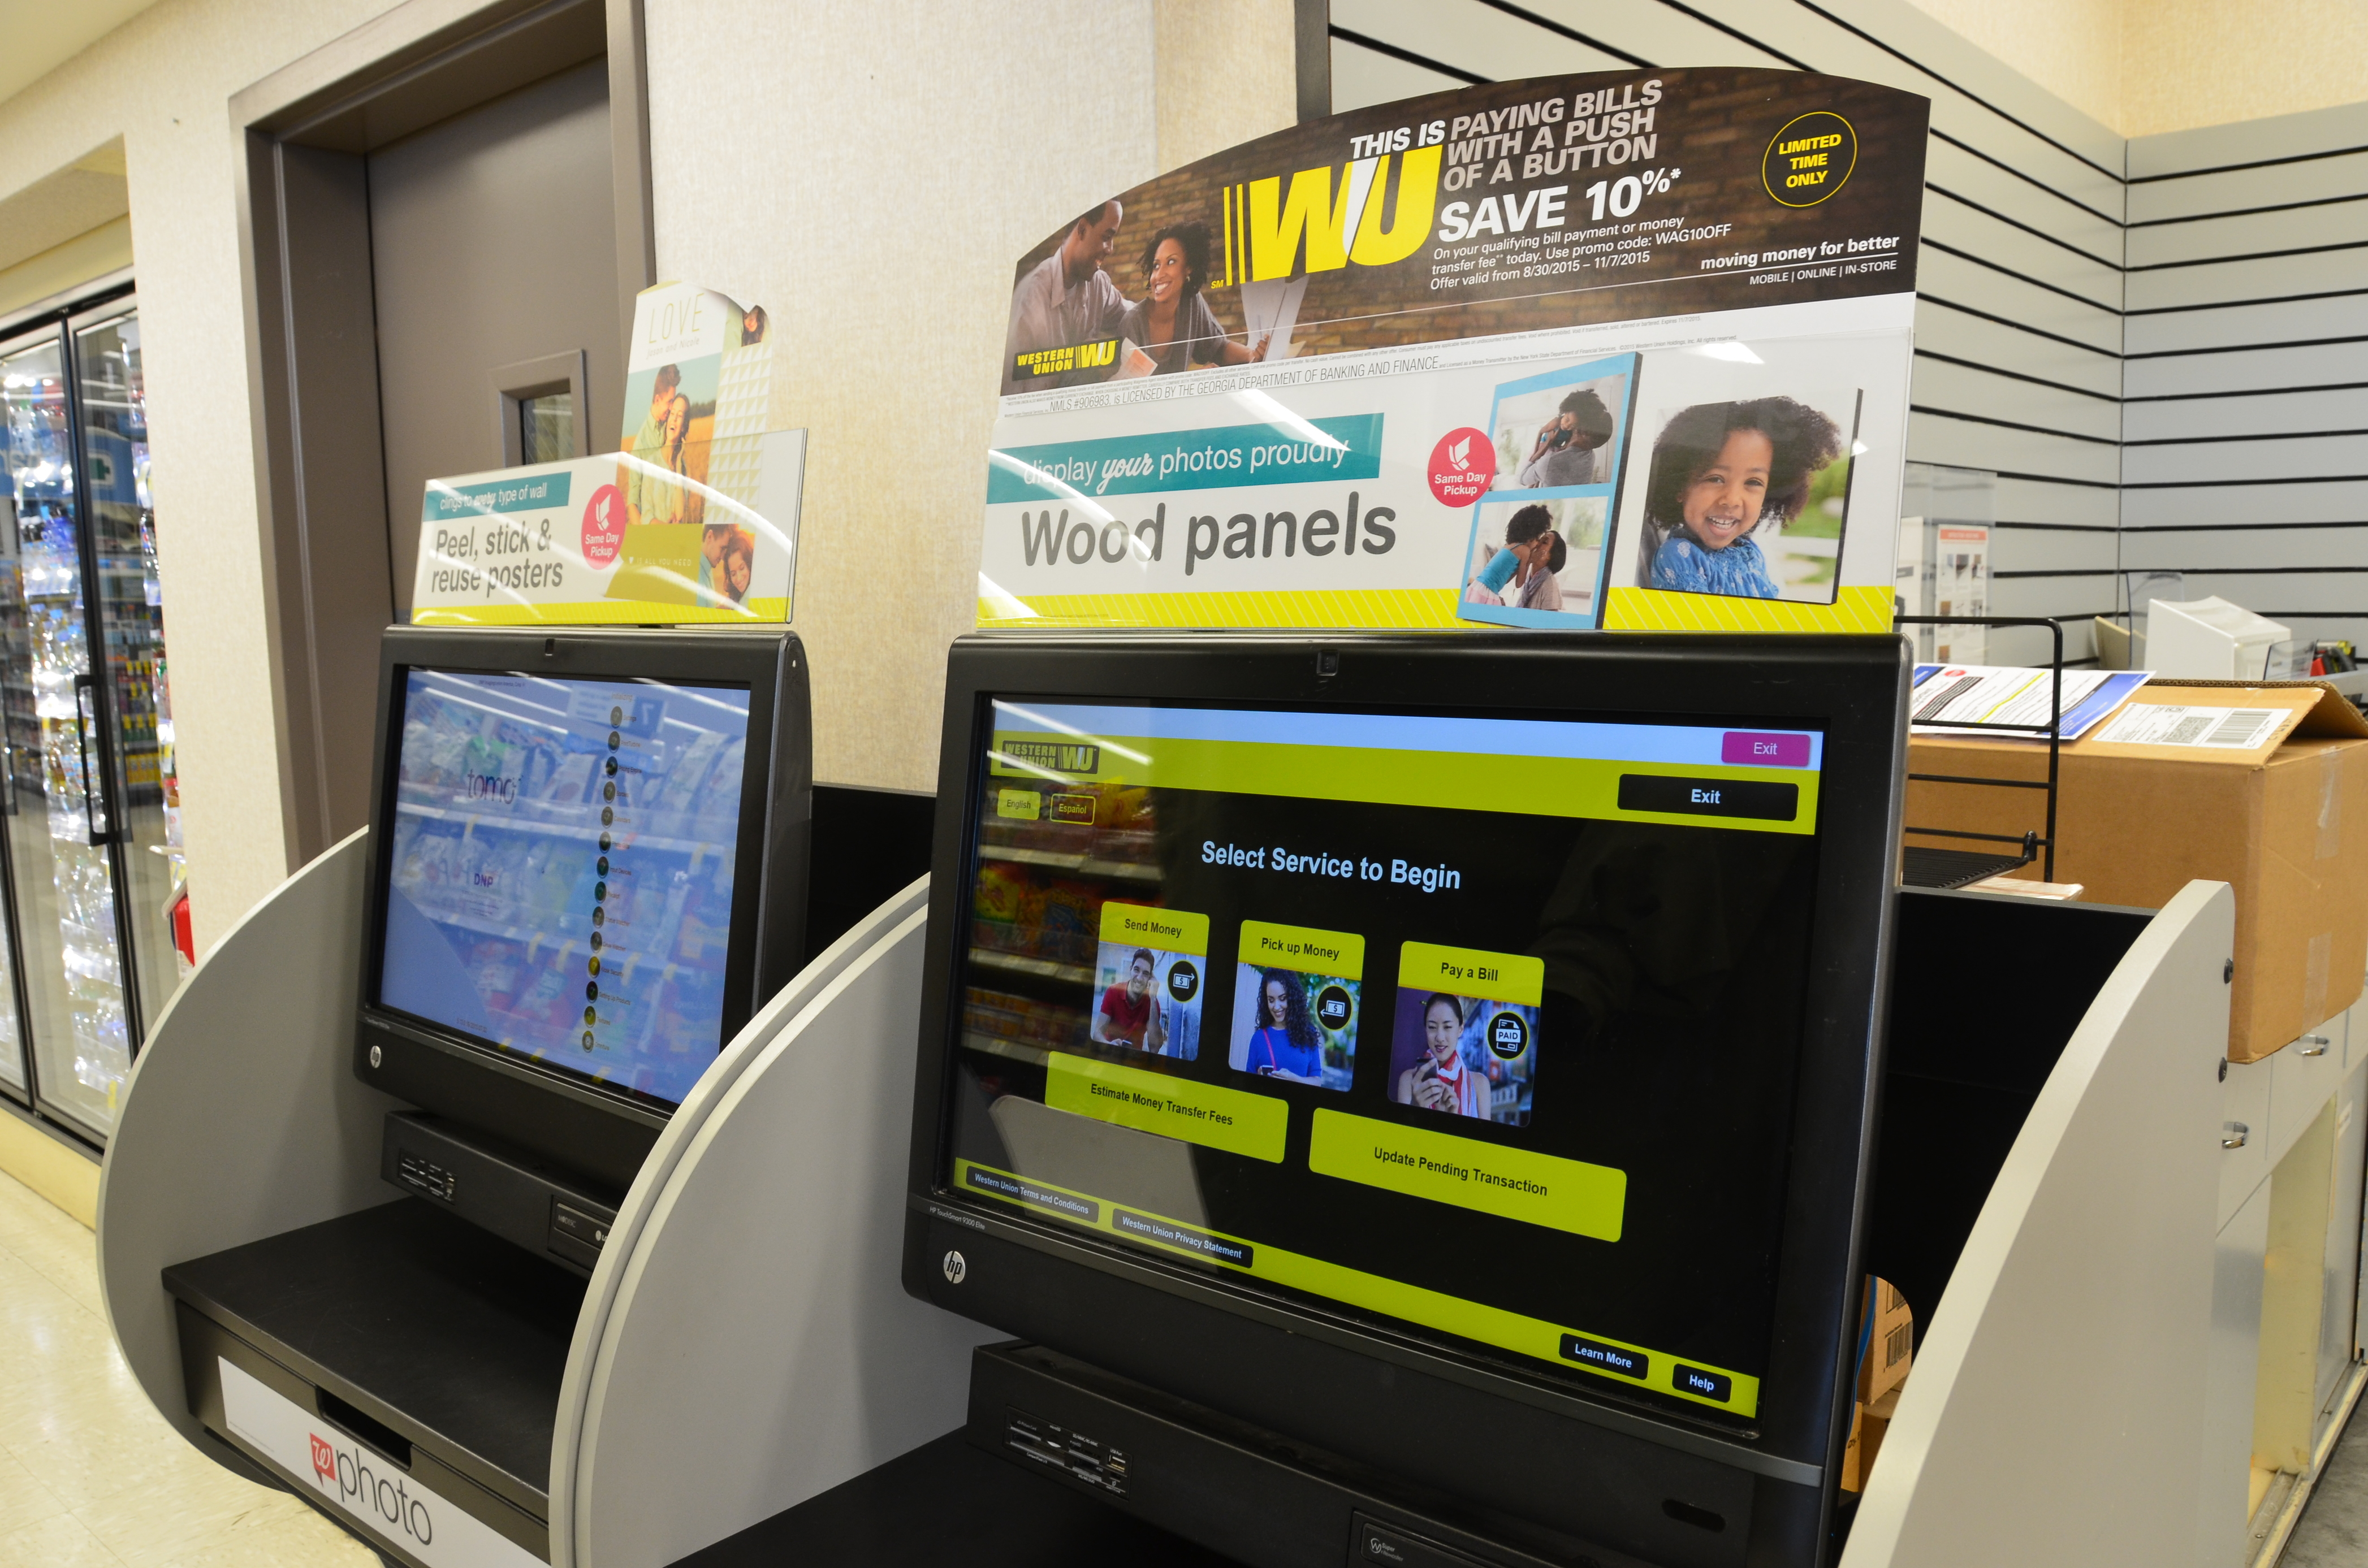 Western Union Bill Payment Kiosk Now At Walgreens